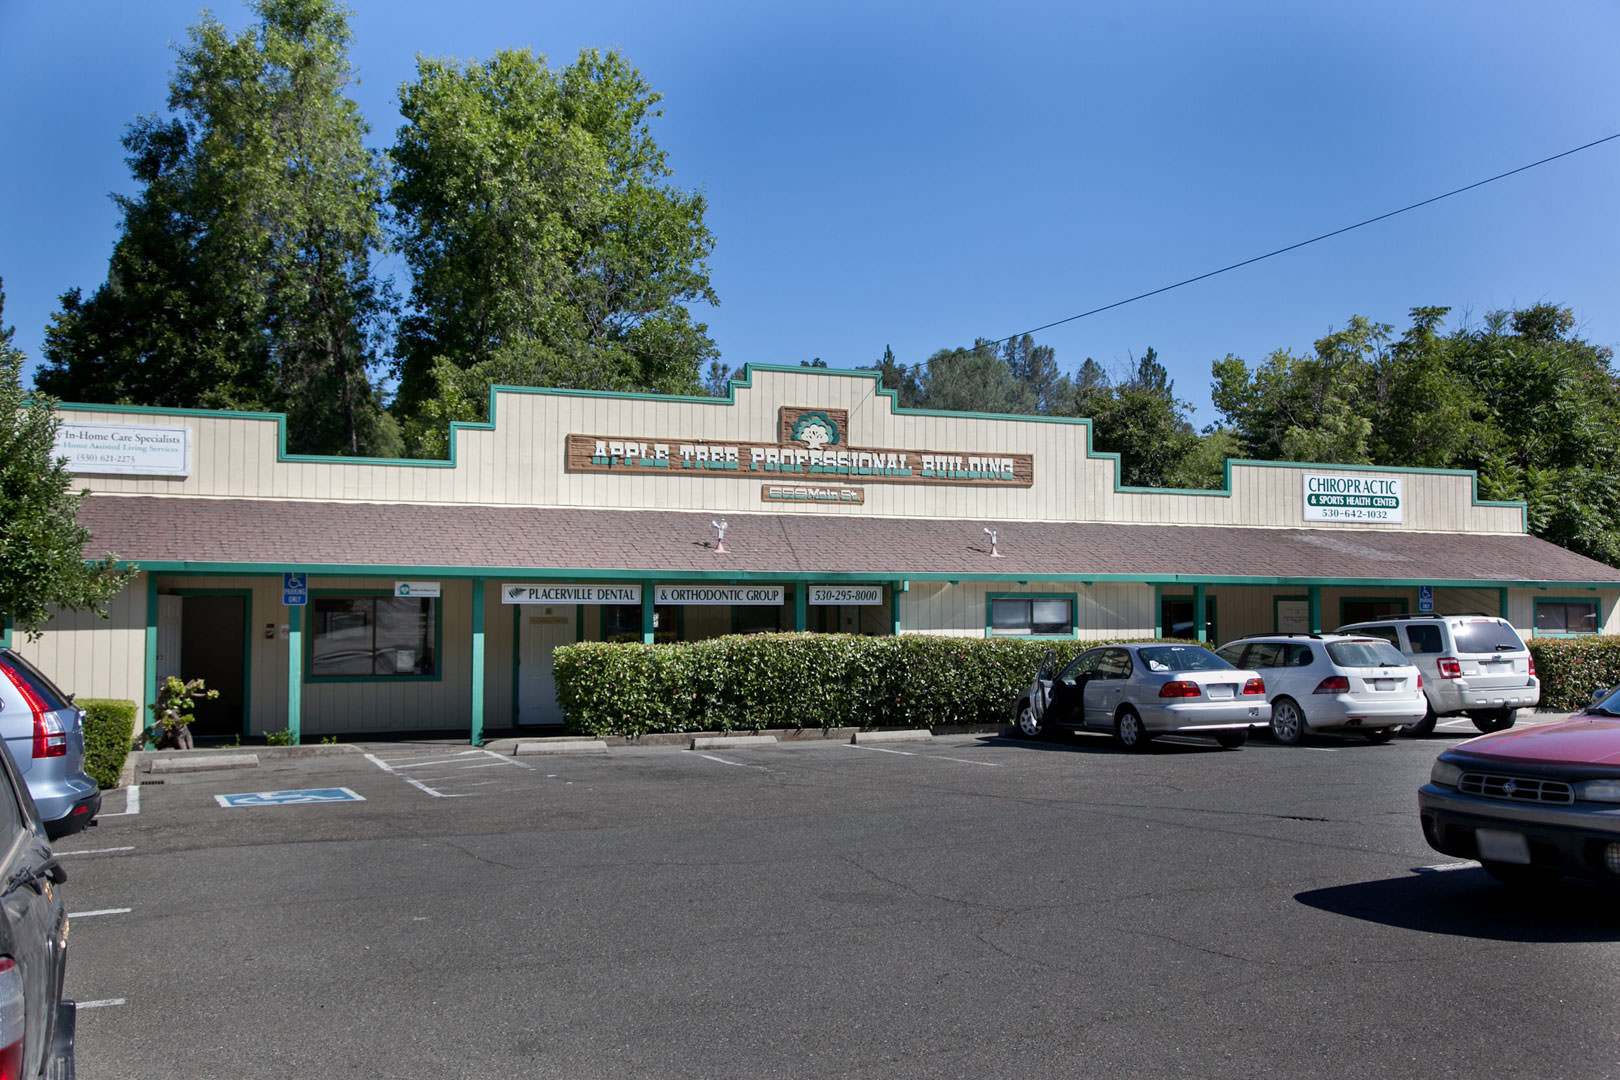 The Placerville Dental Group office.